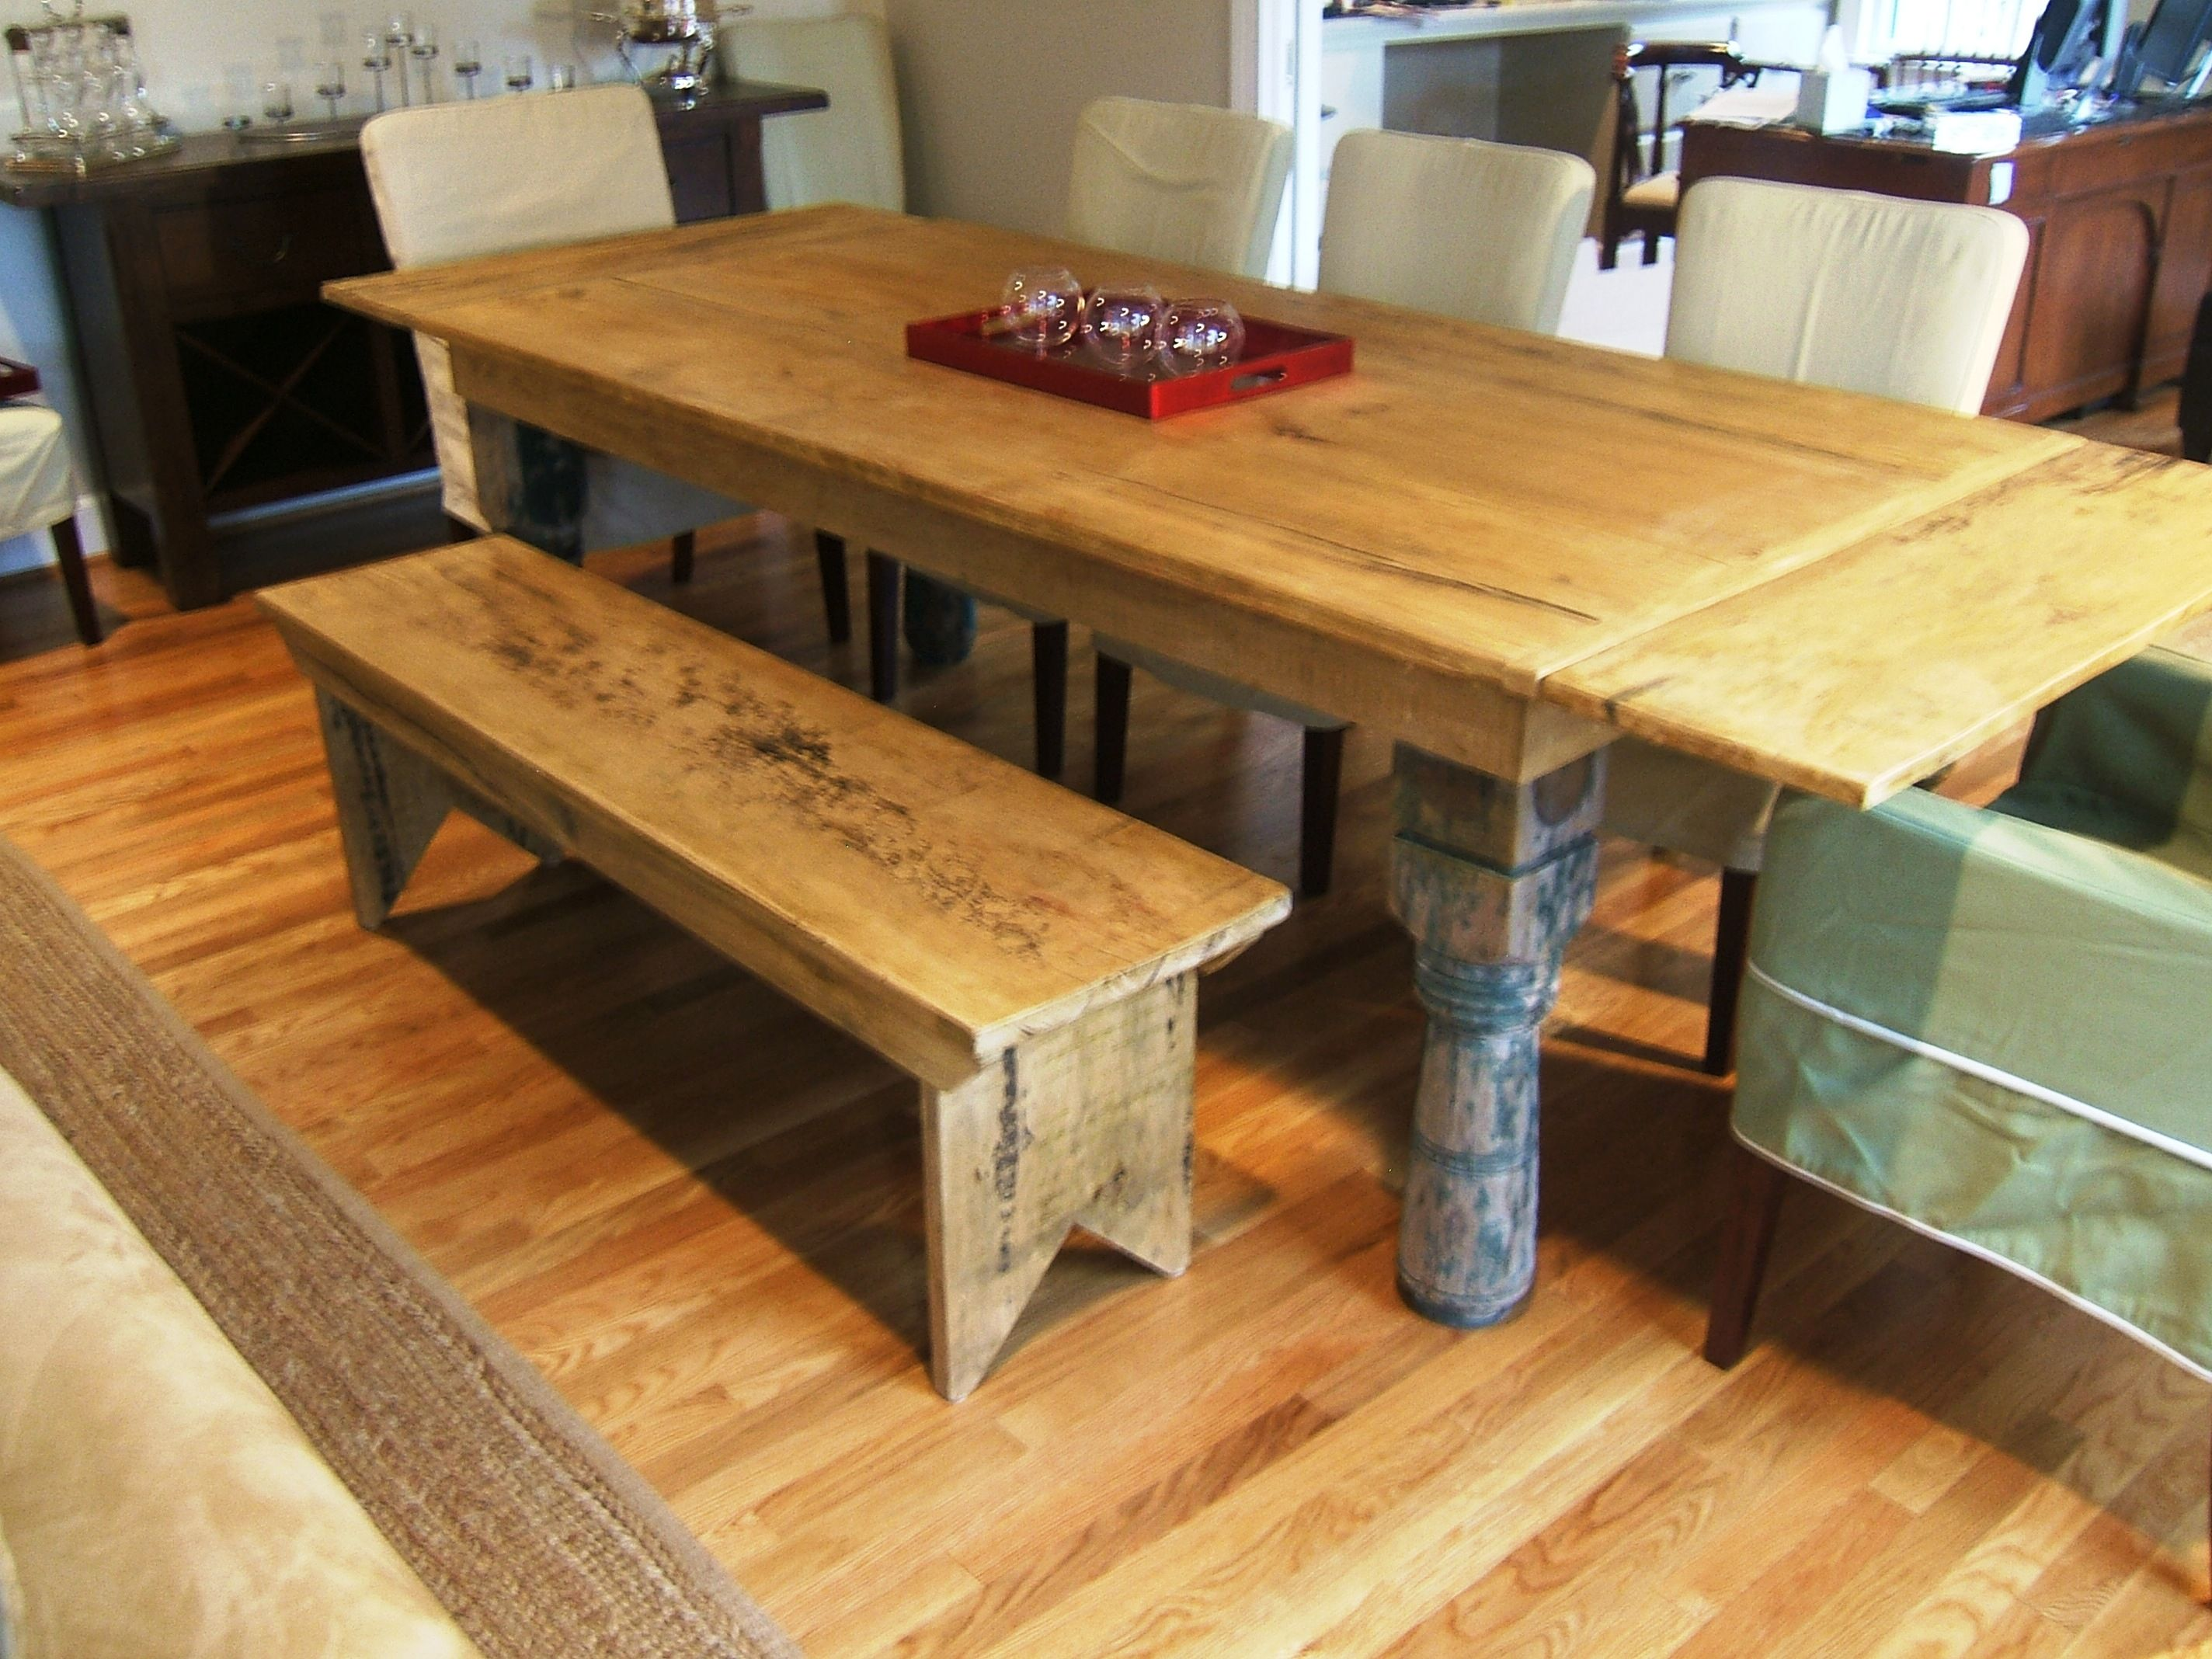 Dining table with leaves and reclaimed porch